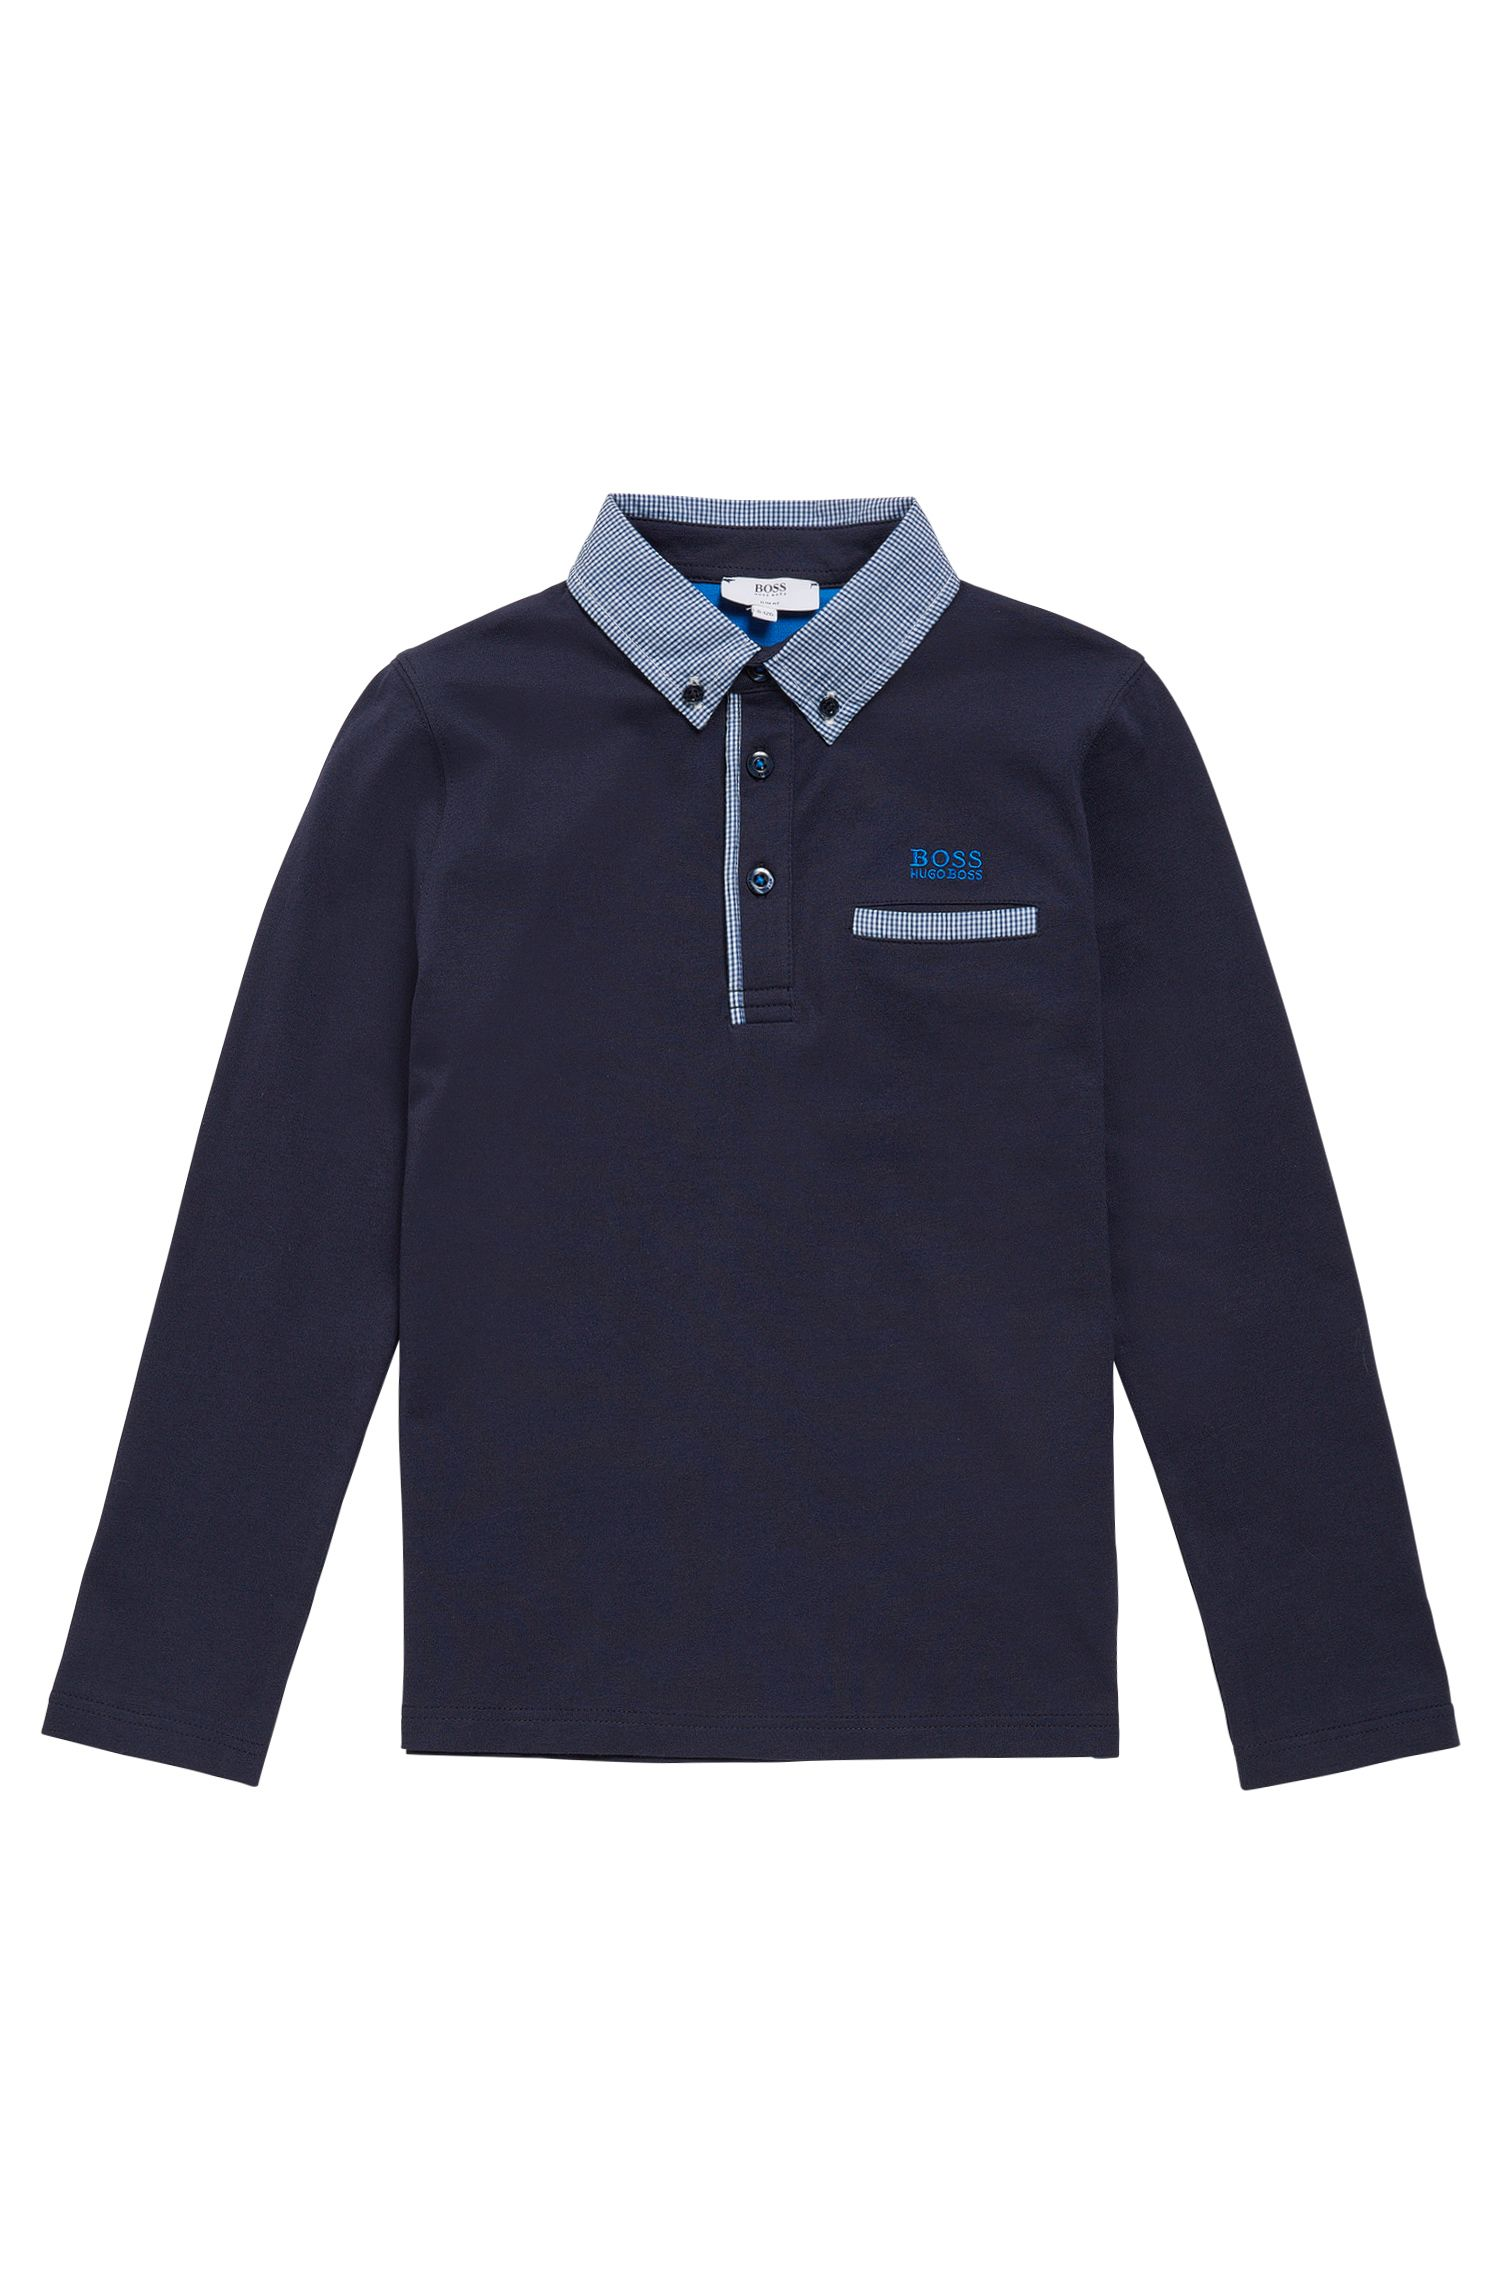 Kids' long-sleeved shirt in cotton with checked details: 'J25993'